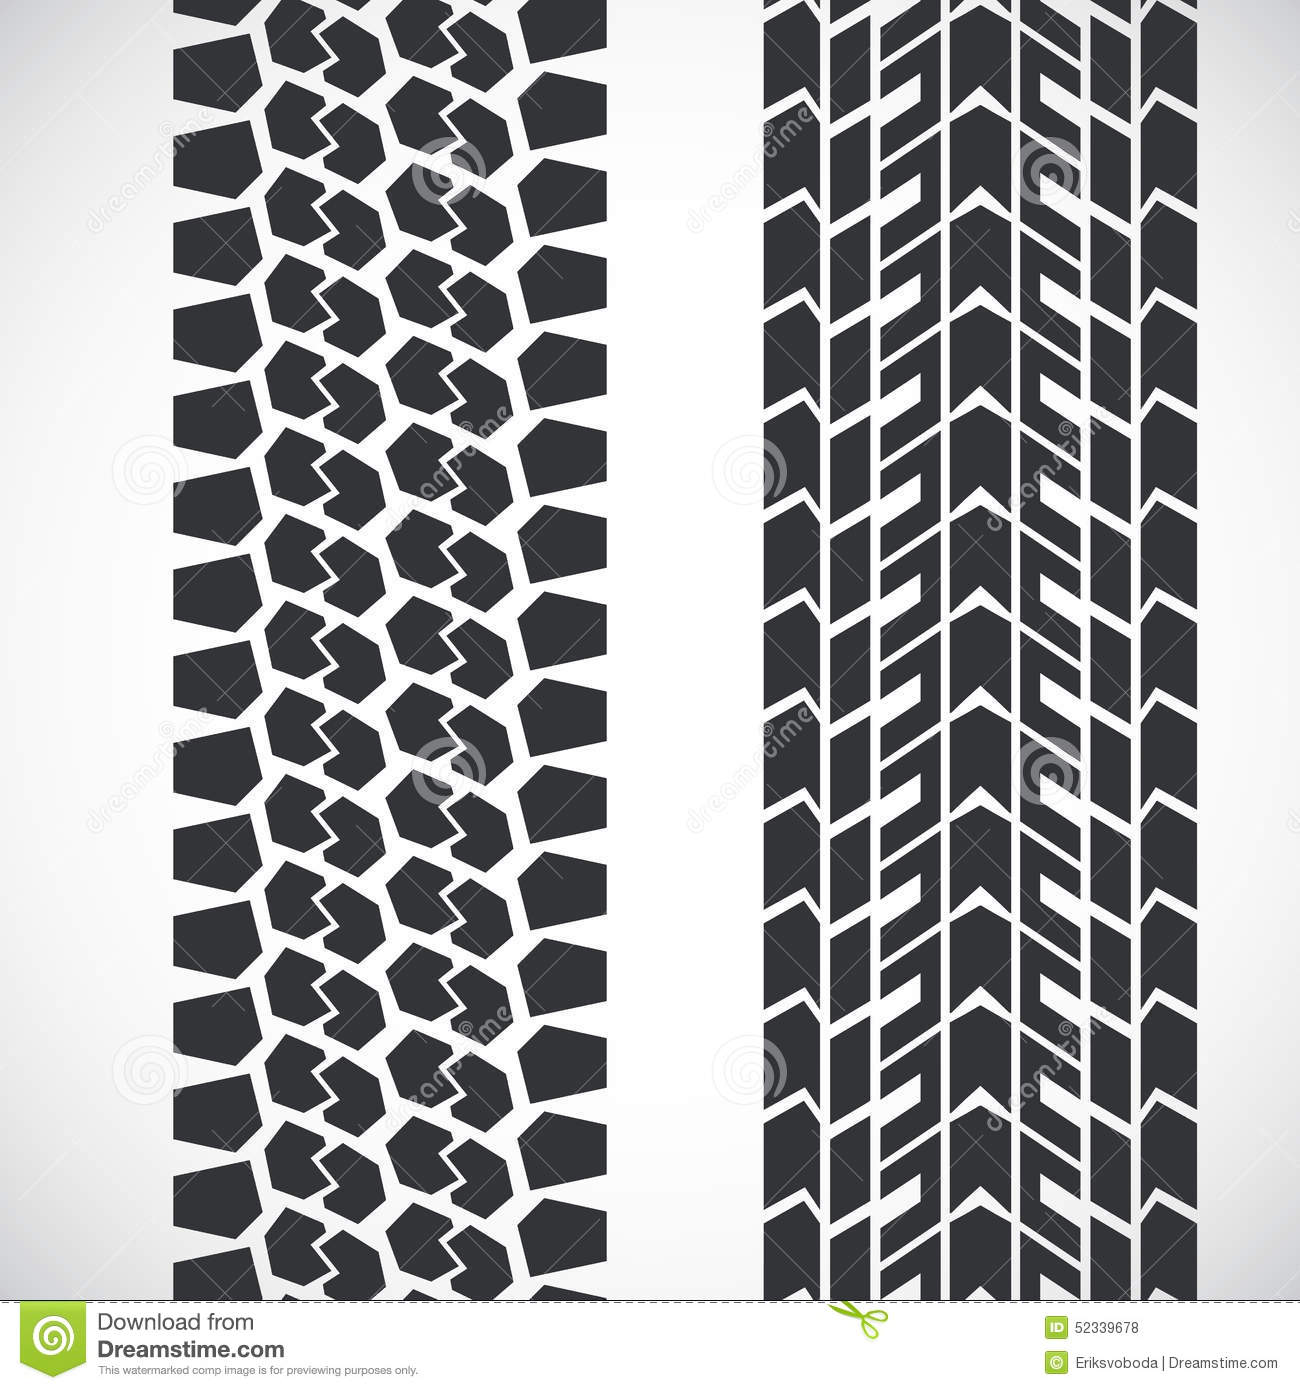 Tractor Tread Pattern : Tread pattern tyre stock vector illustration of tile